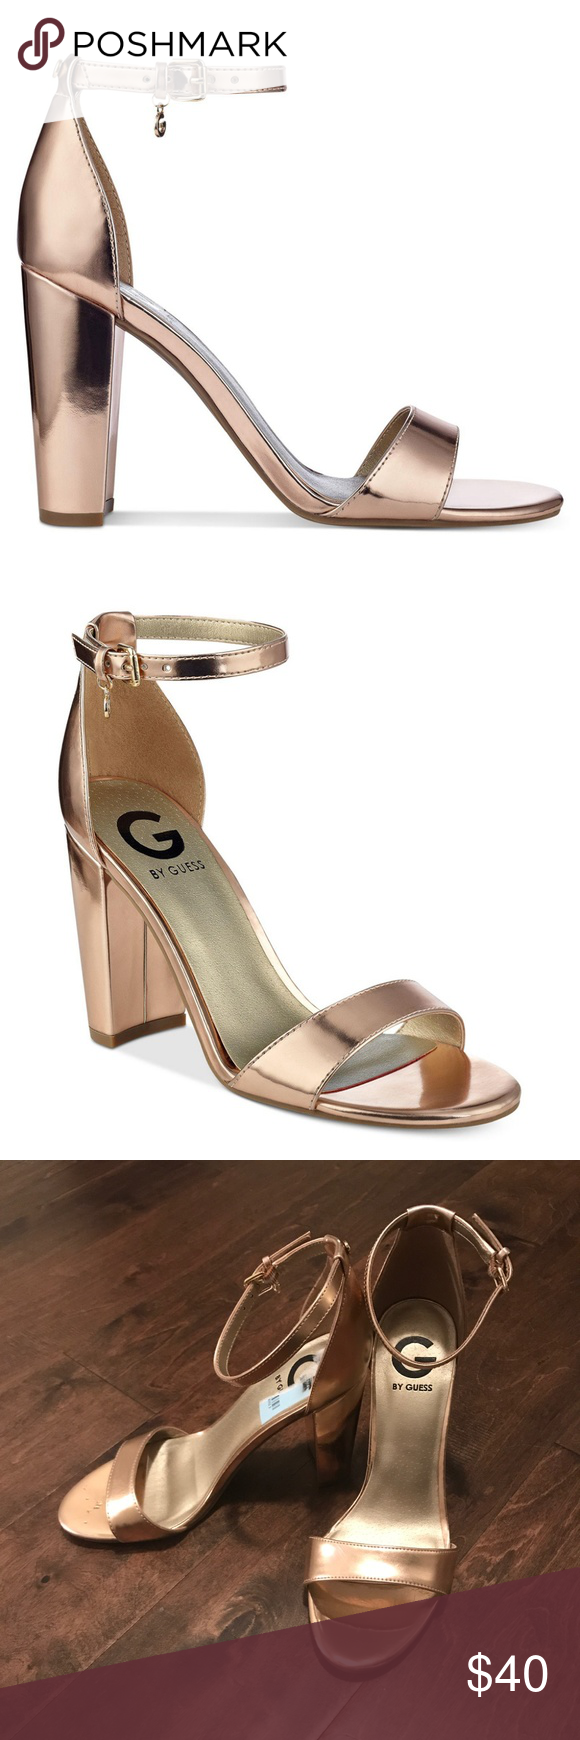 7faae1926 G By Guess Shantel Two-Piece Block Heel Pumps In great condition! Like new